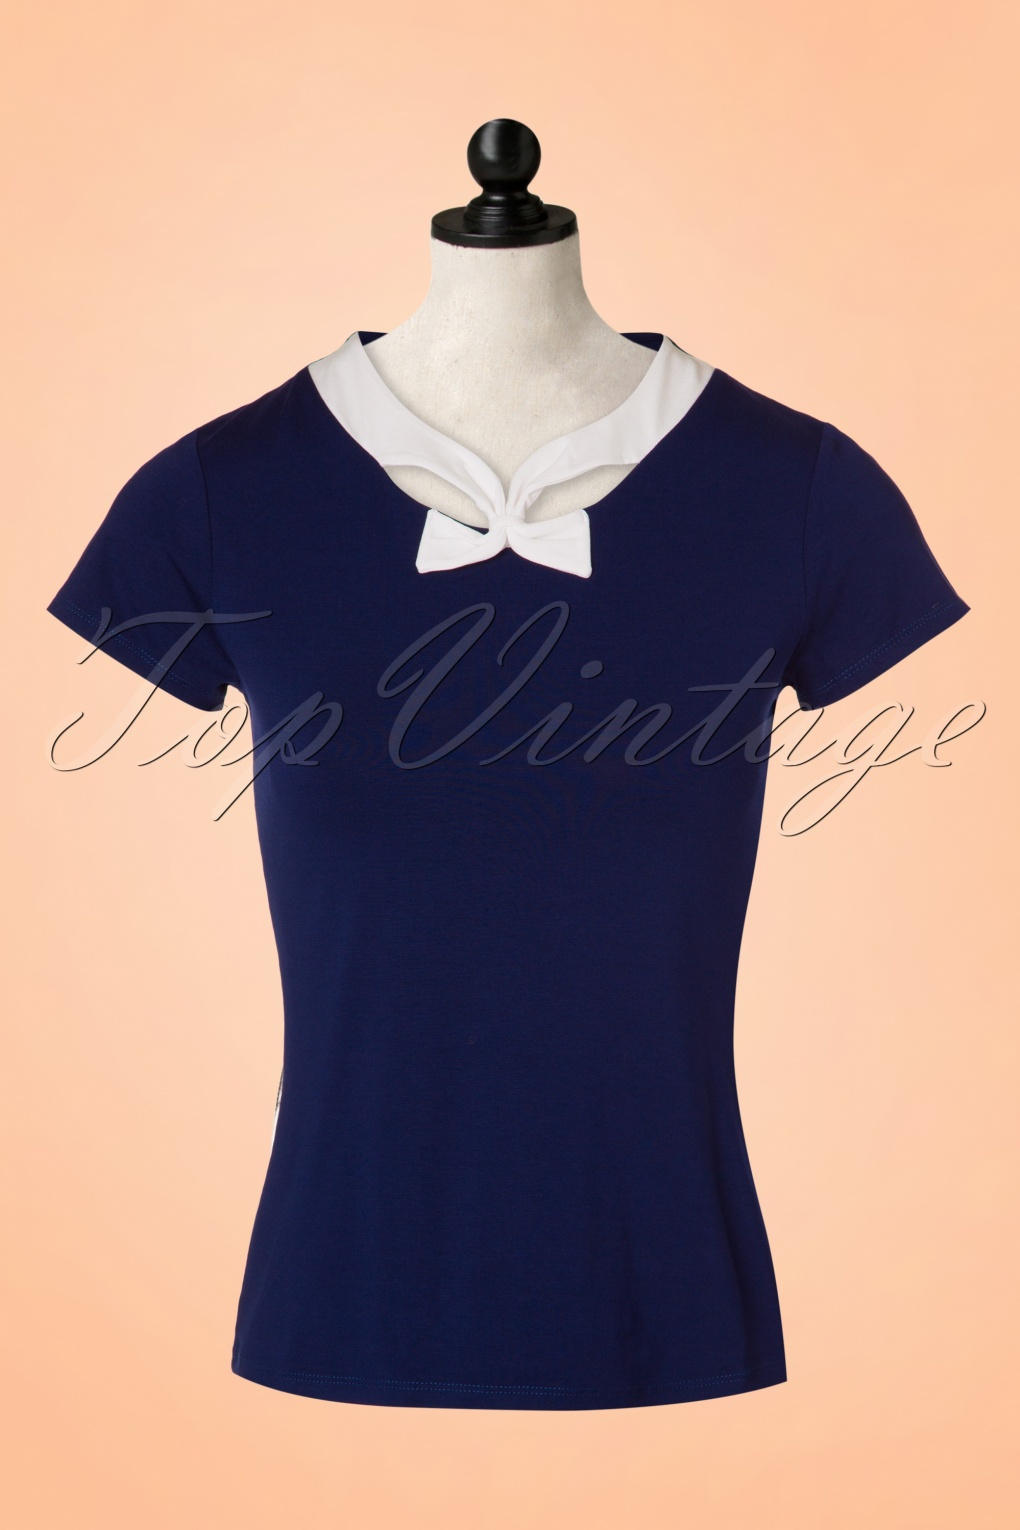 1950s Rockabilly & Pinup Tops, Shirts, Blouses 50s Holywell Top in Navy £34.61 AT vintagedancer.com